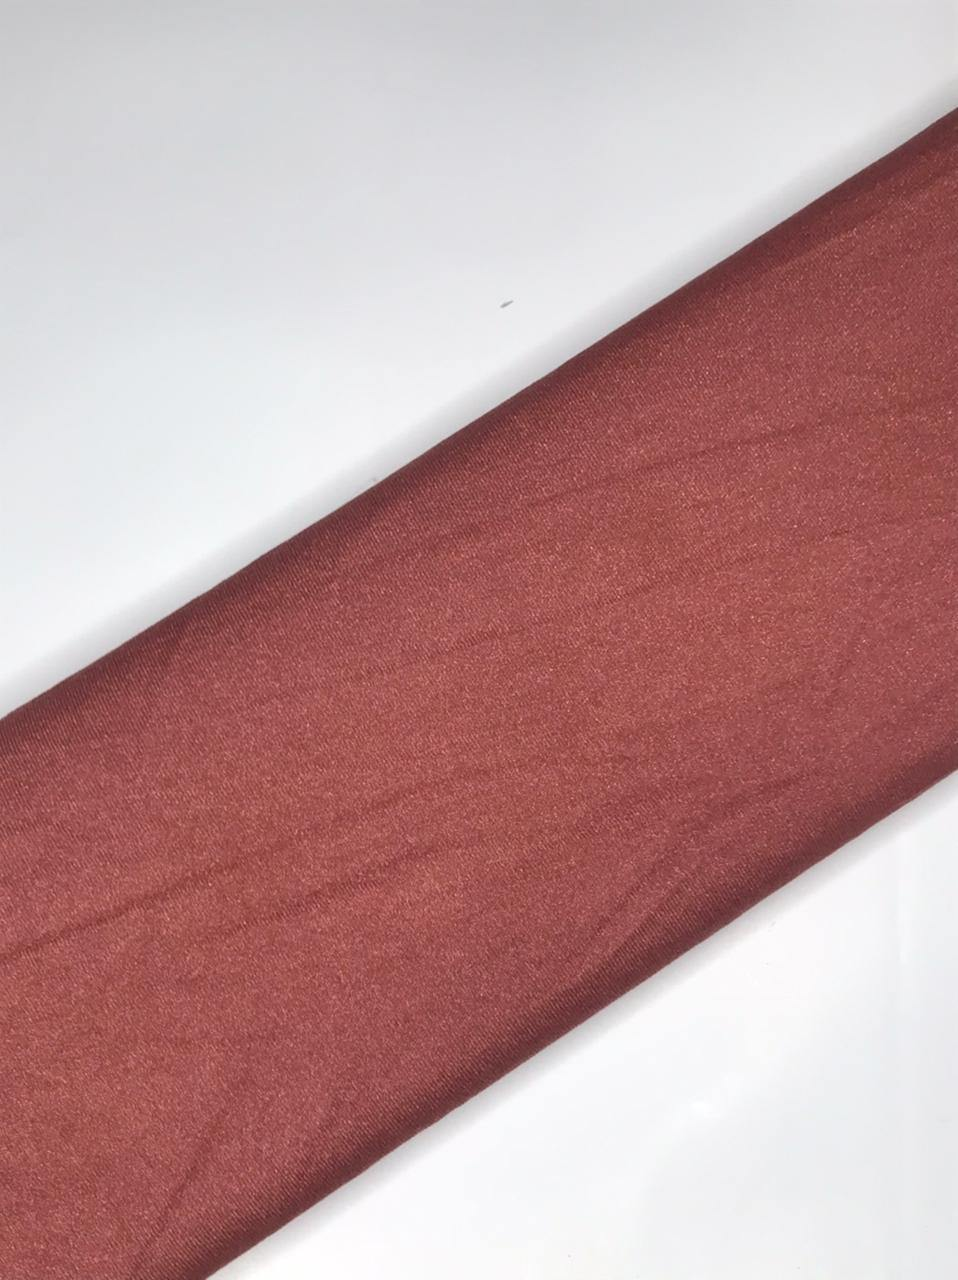 Imported Knitted Stretchable Pink Moss Sparkle Fabric (Width - 58 Inches)